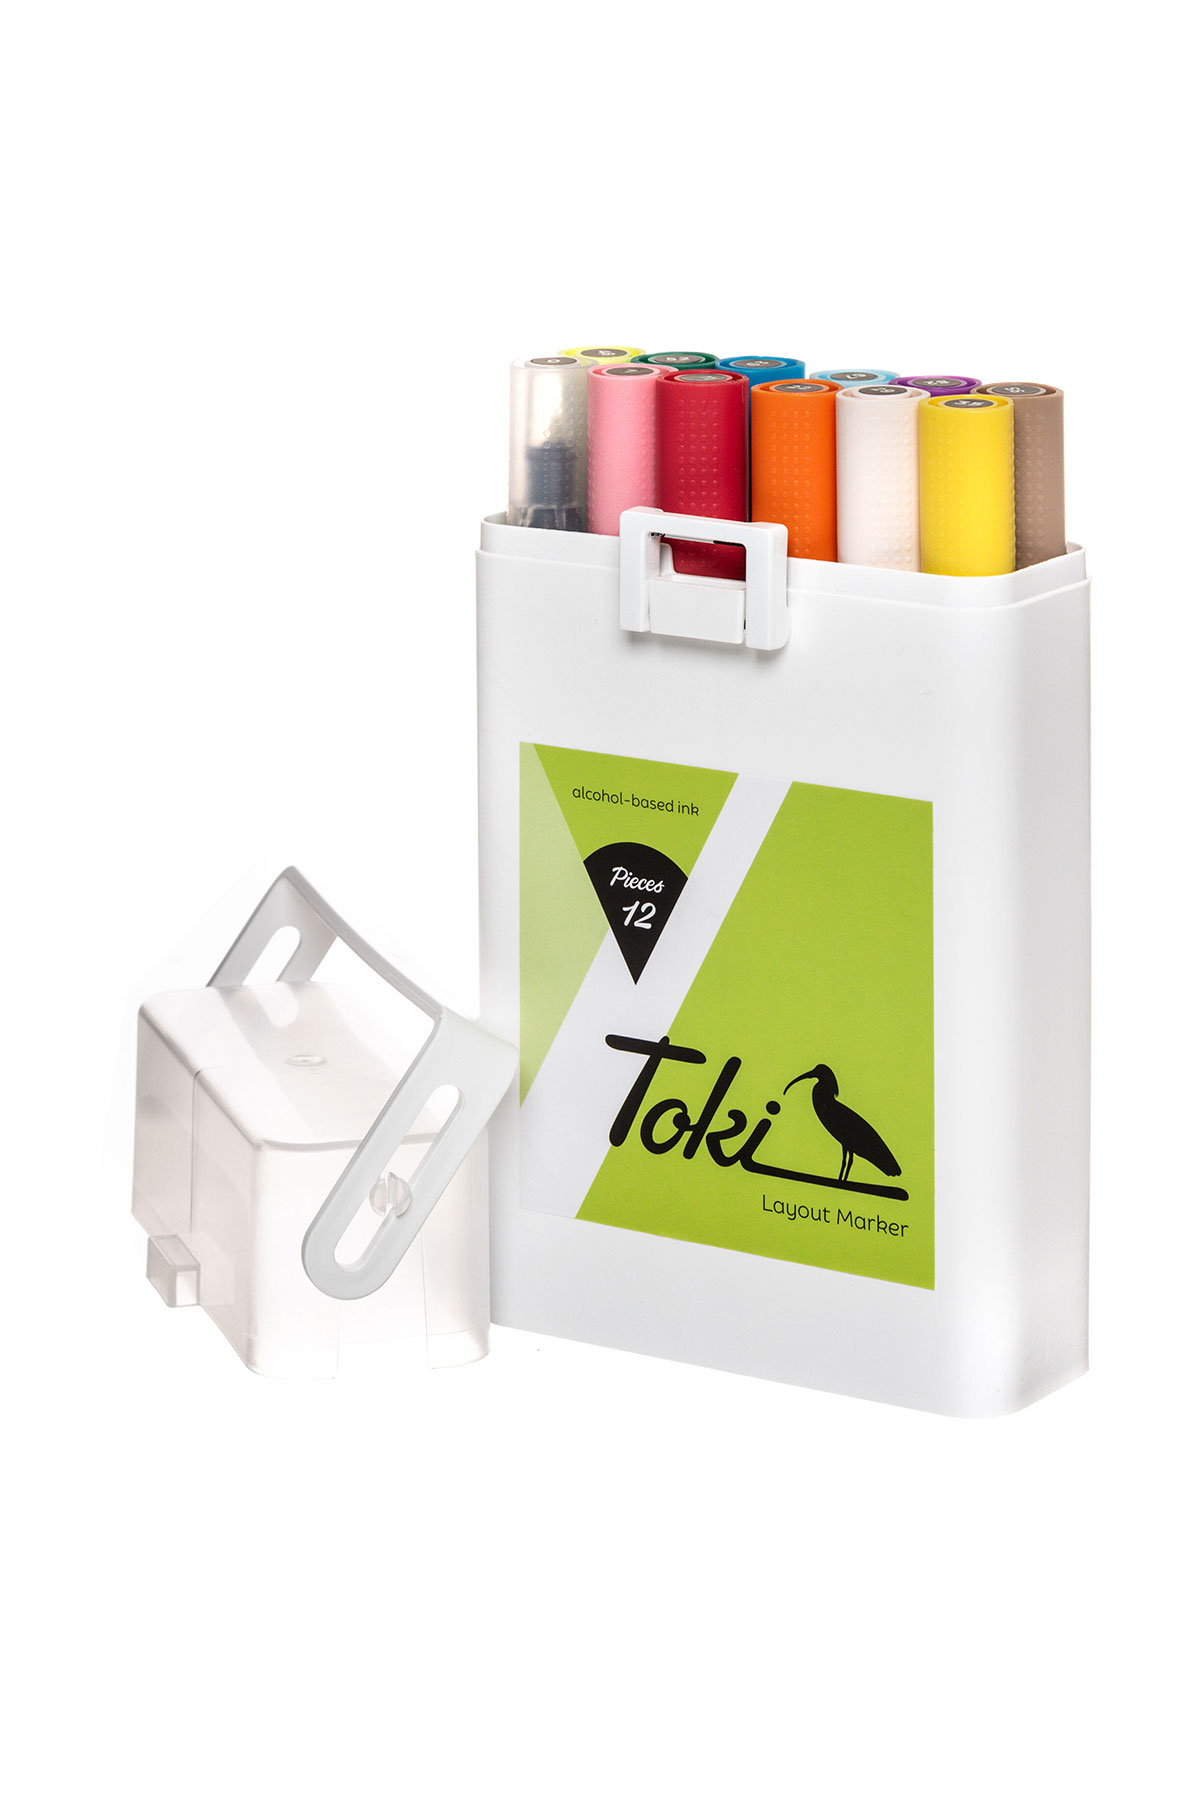 Toki LAYOUTMARKER 12 Set B